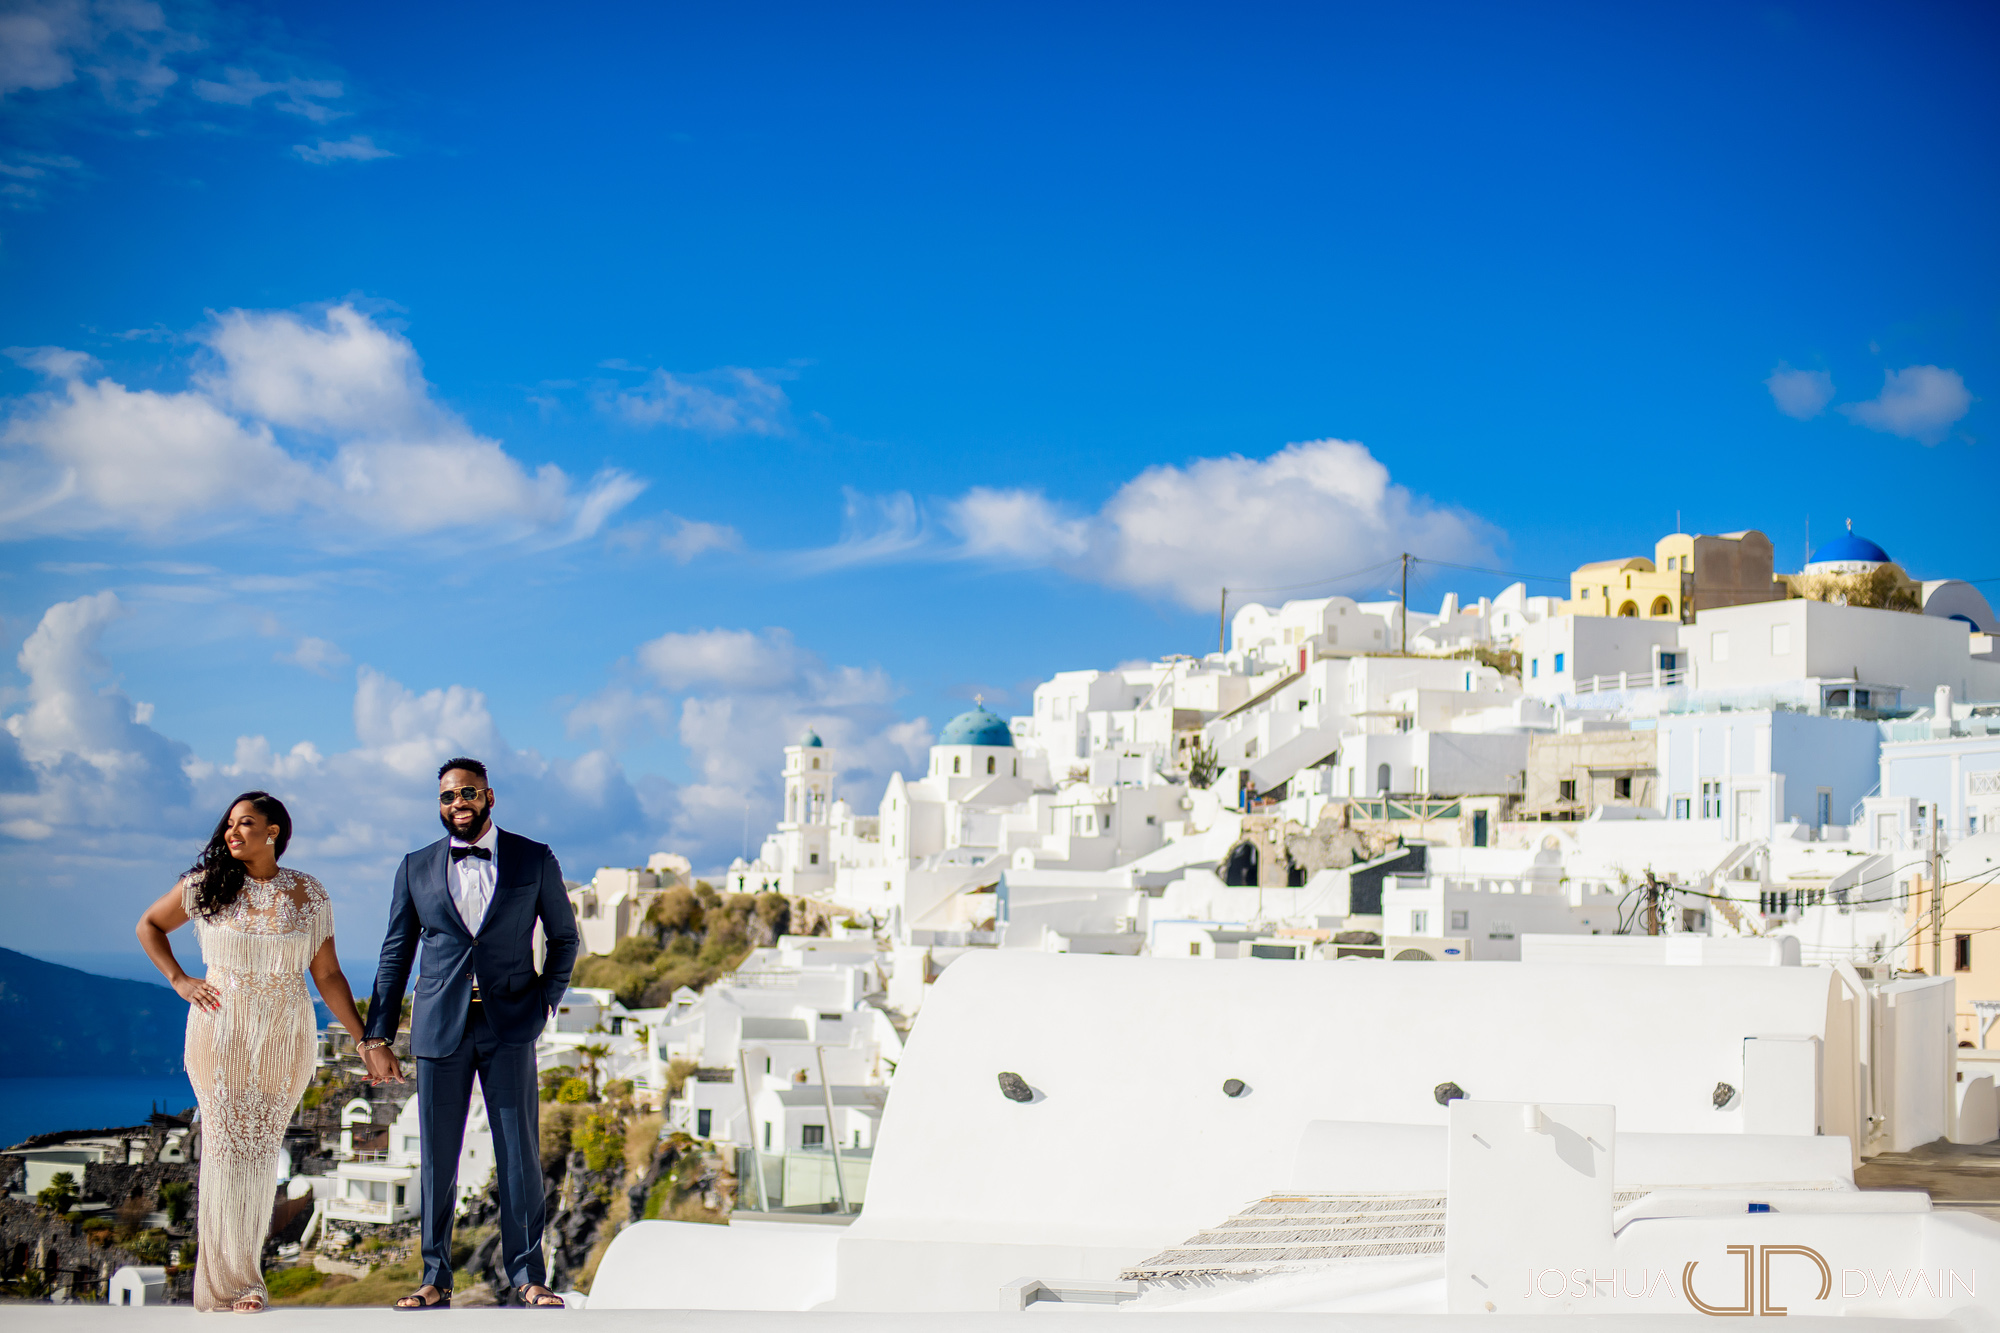 ekene-issac-21-santorini-oia-thira-greece-wedding-engagement-photos-african-american-destination-photographer-joshua-dwain